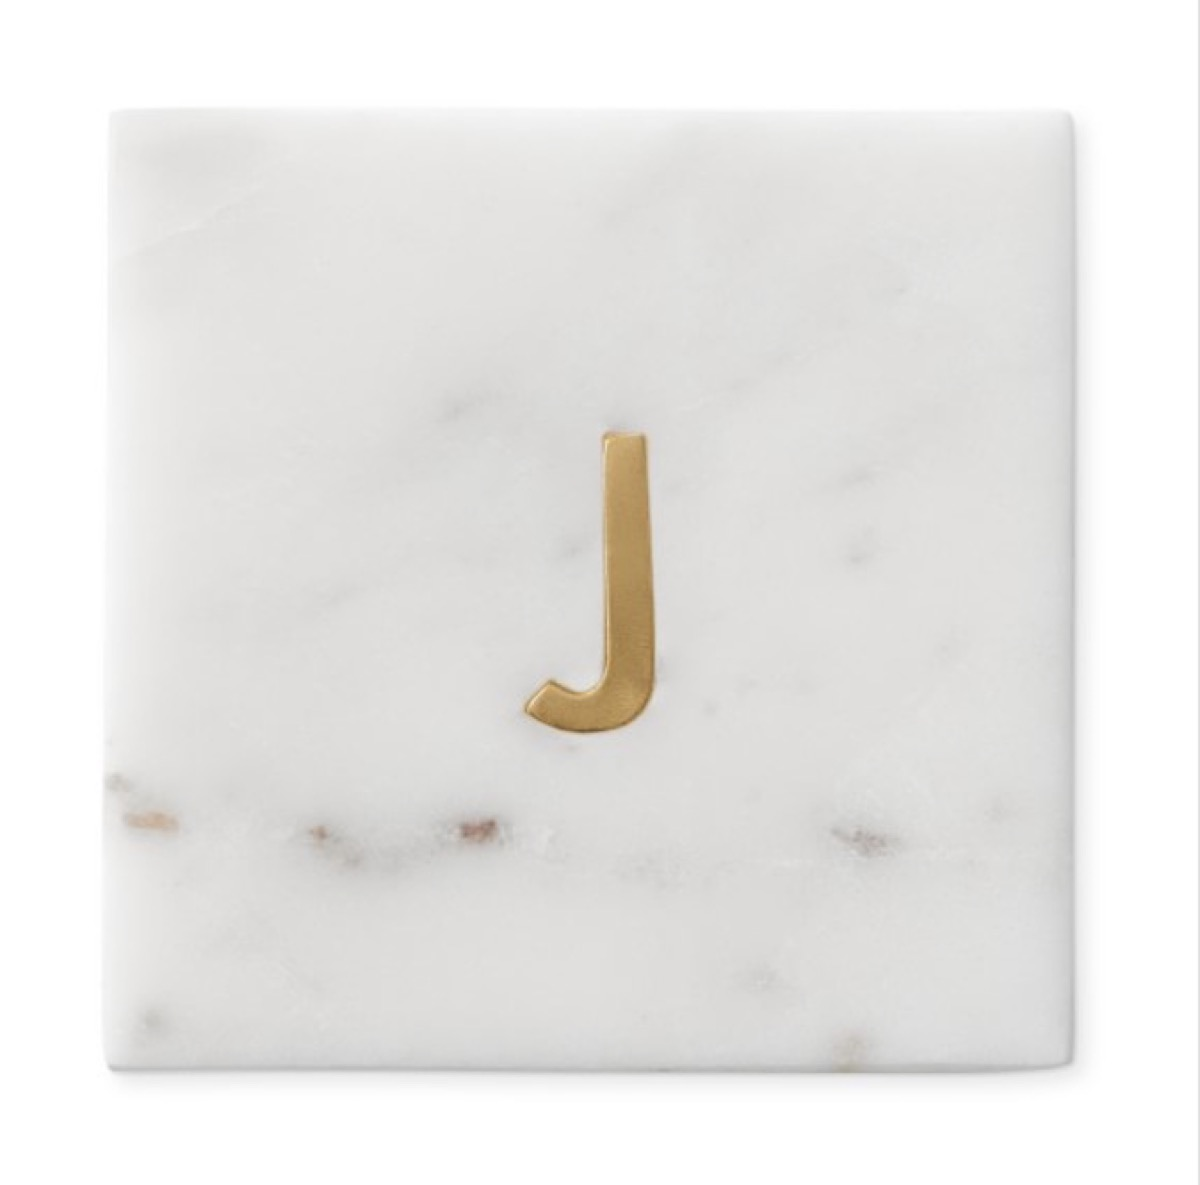 Williams Sonoma Marble Coaster buy after holidays